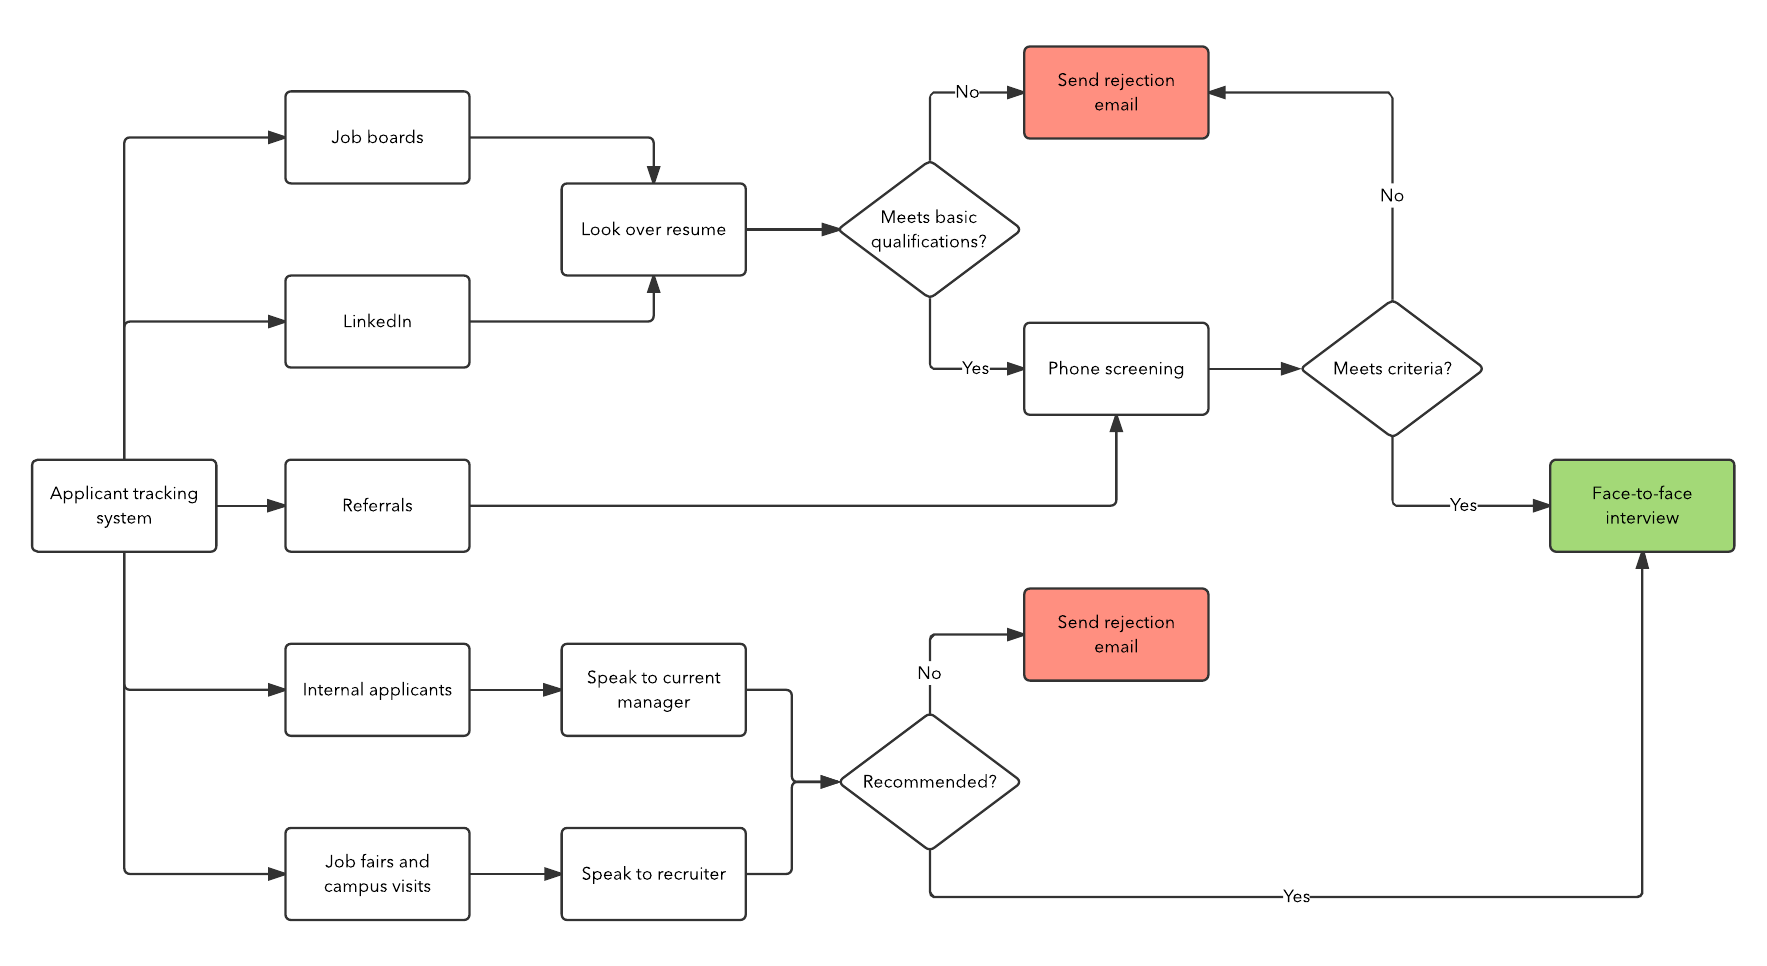 How to build a recruitment process lucidchart recruiting process by source flowchart template pooptronica